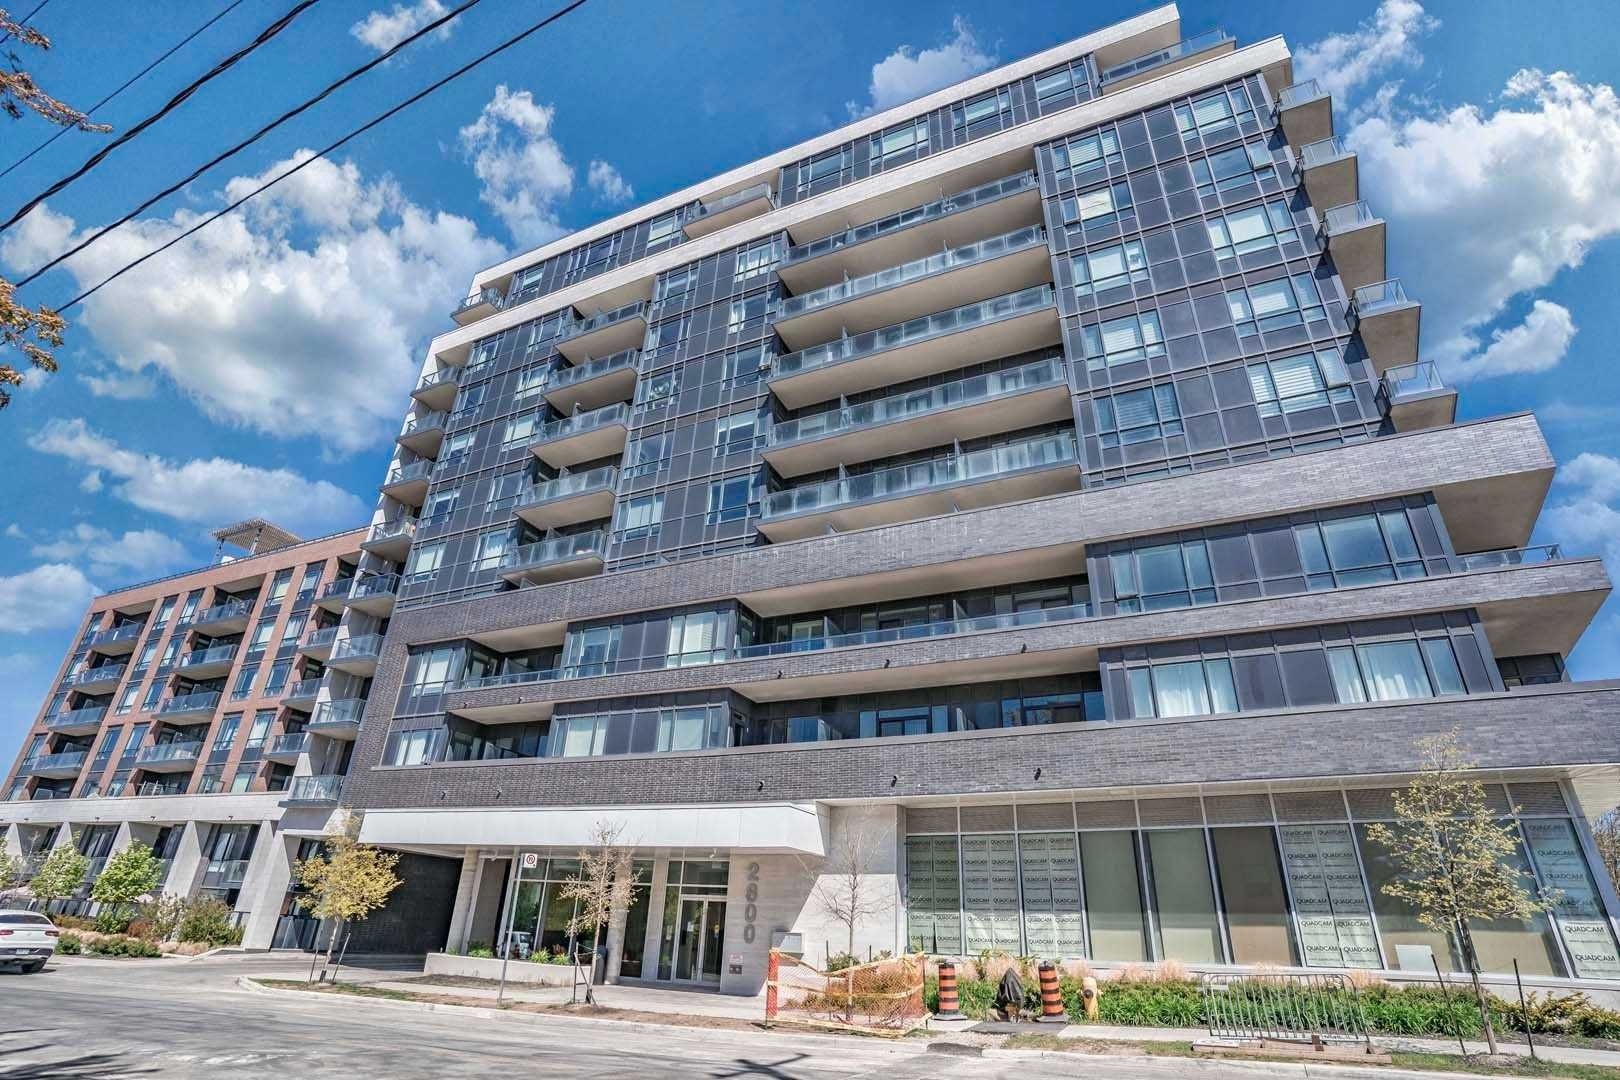 2800 Keele St, unit 605 for rent in Toronto - image #2